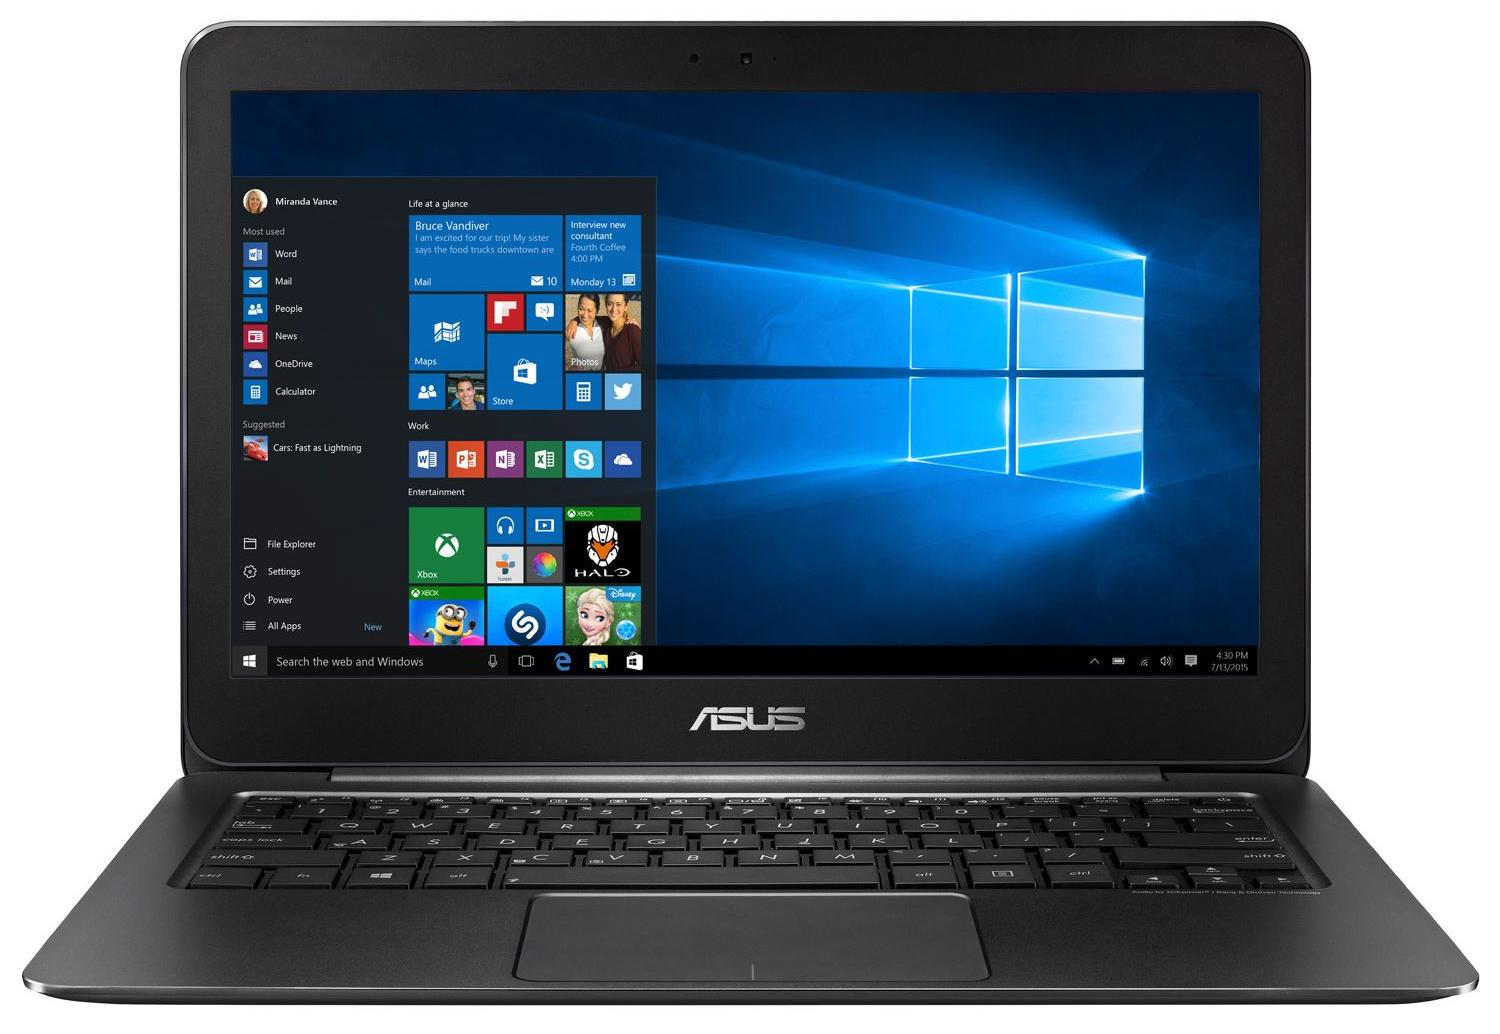 "Ноутбук Asus X553SA-XX102T 15,6"", Intel Celeron N3050 1.6Ghz, 2Gb, 500Tb HDD (90NB0AC1-M01470) Black"